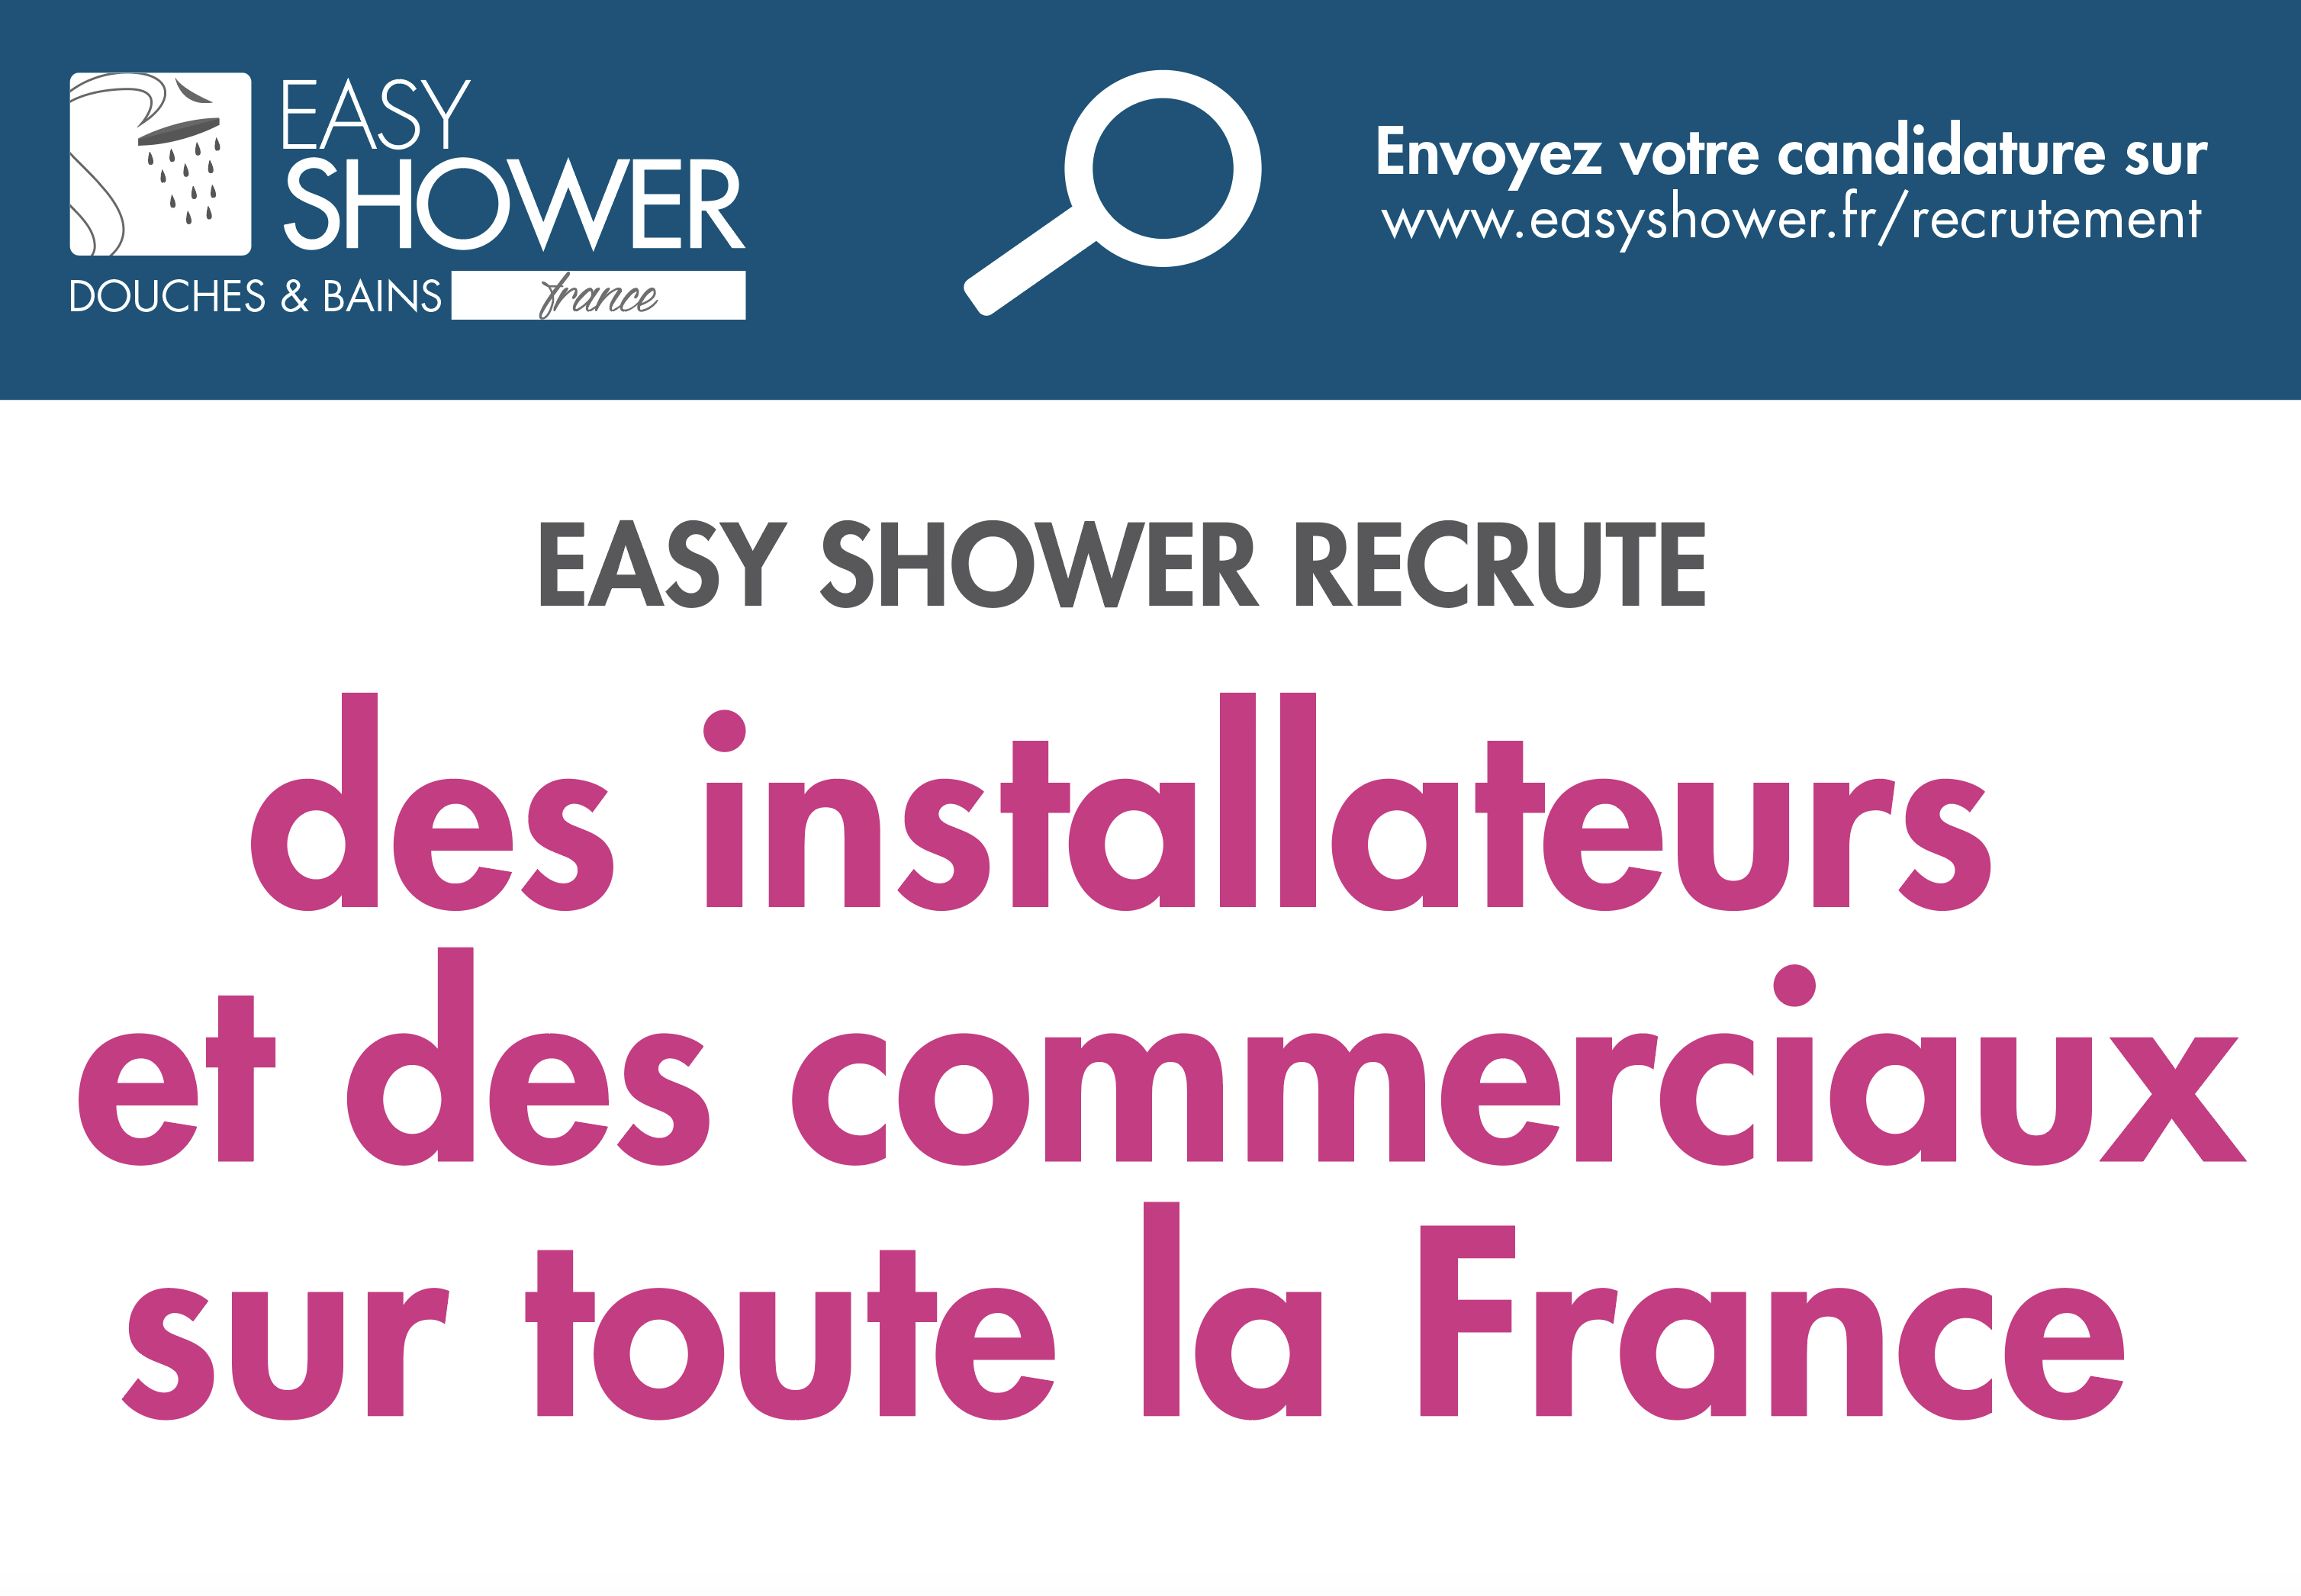 Easy Shower recrute !